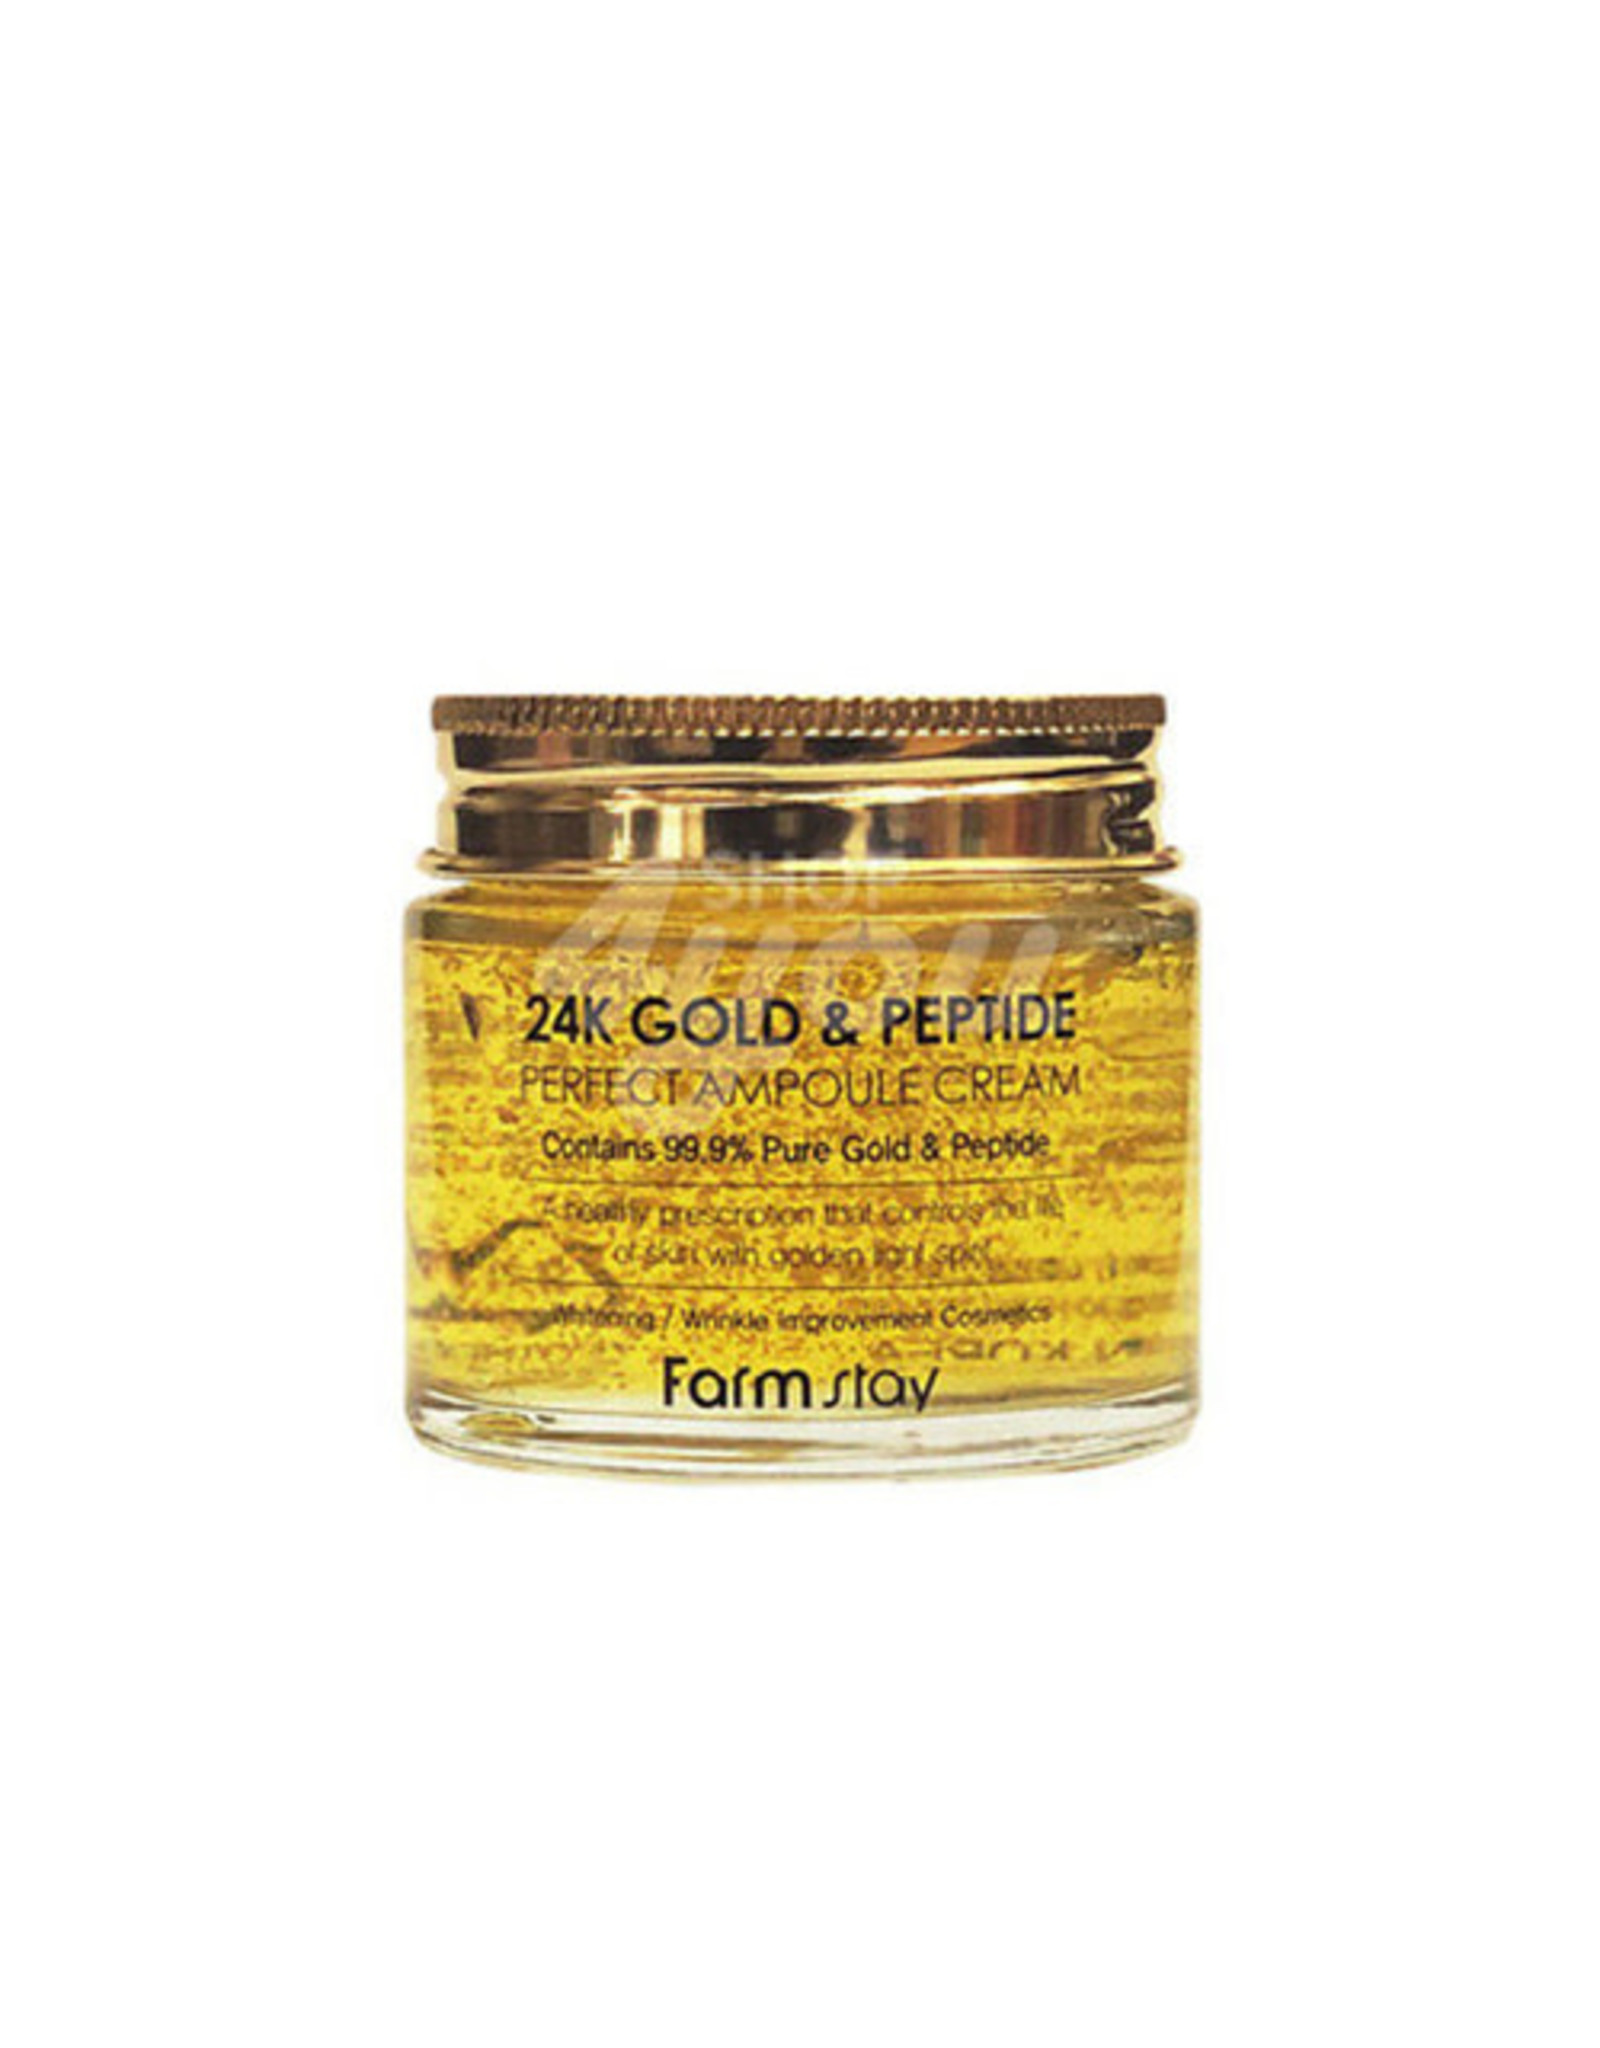 FarmStay Farmstay 24K Gold & Petide Ampoule Cream 80ml